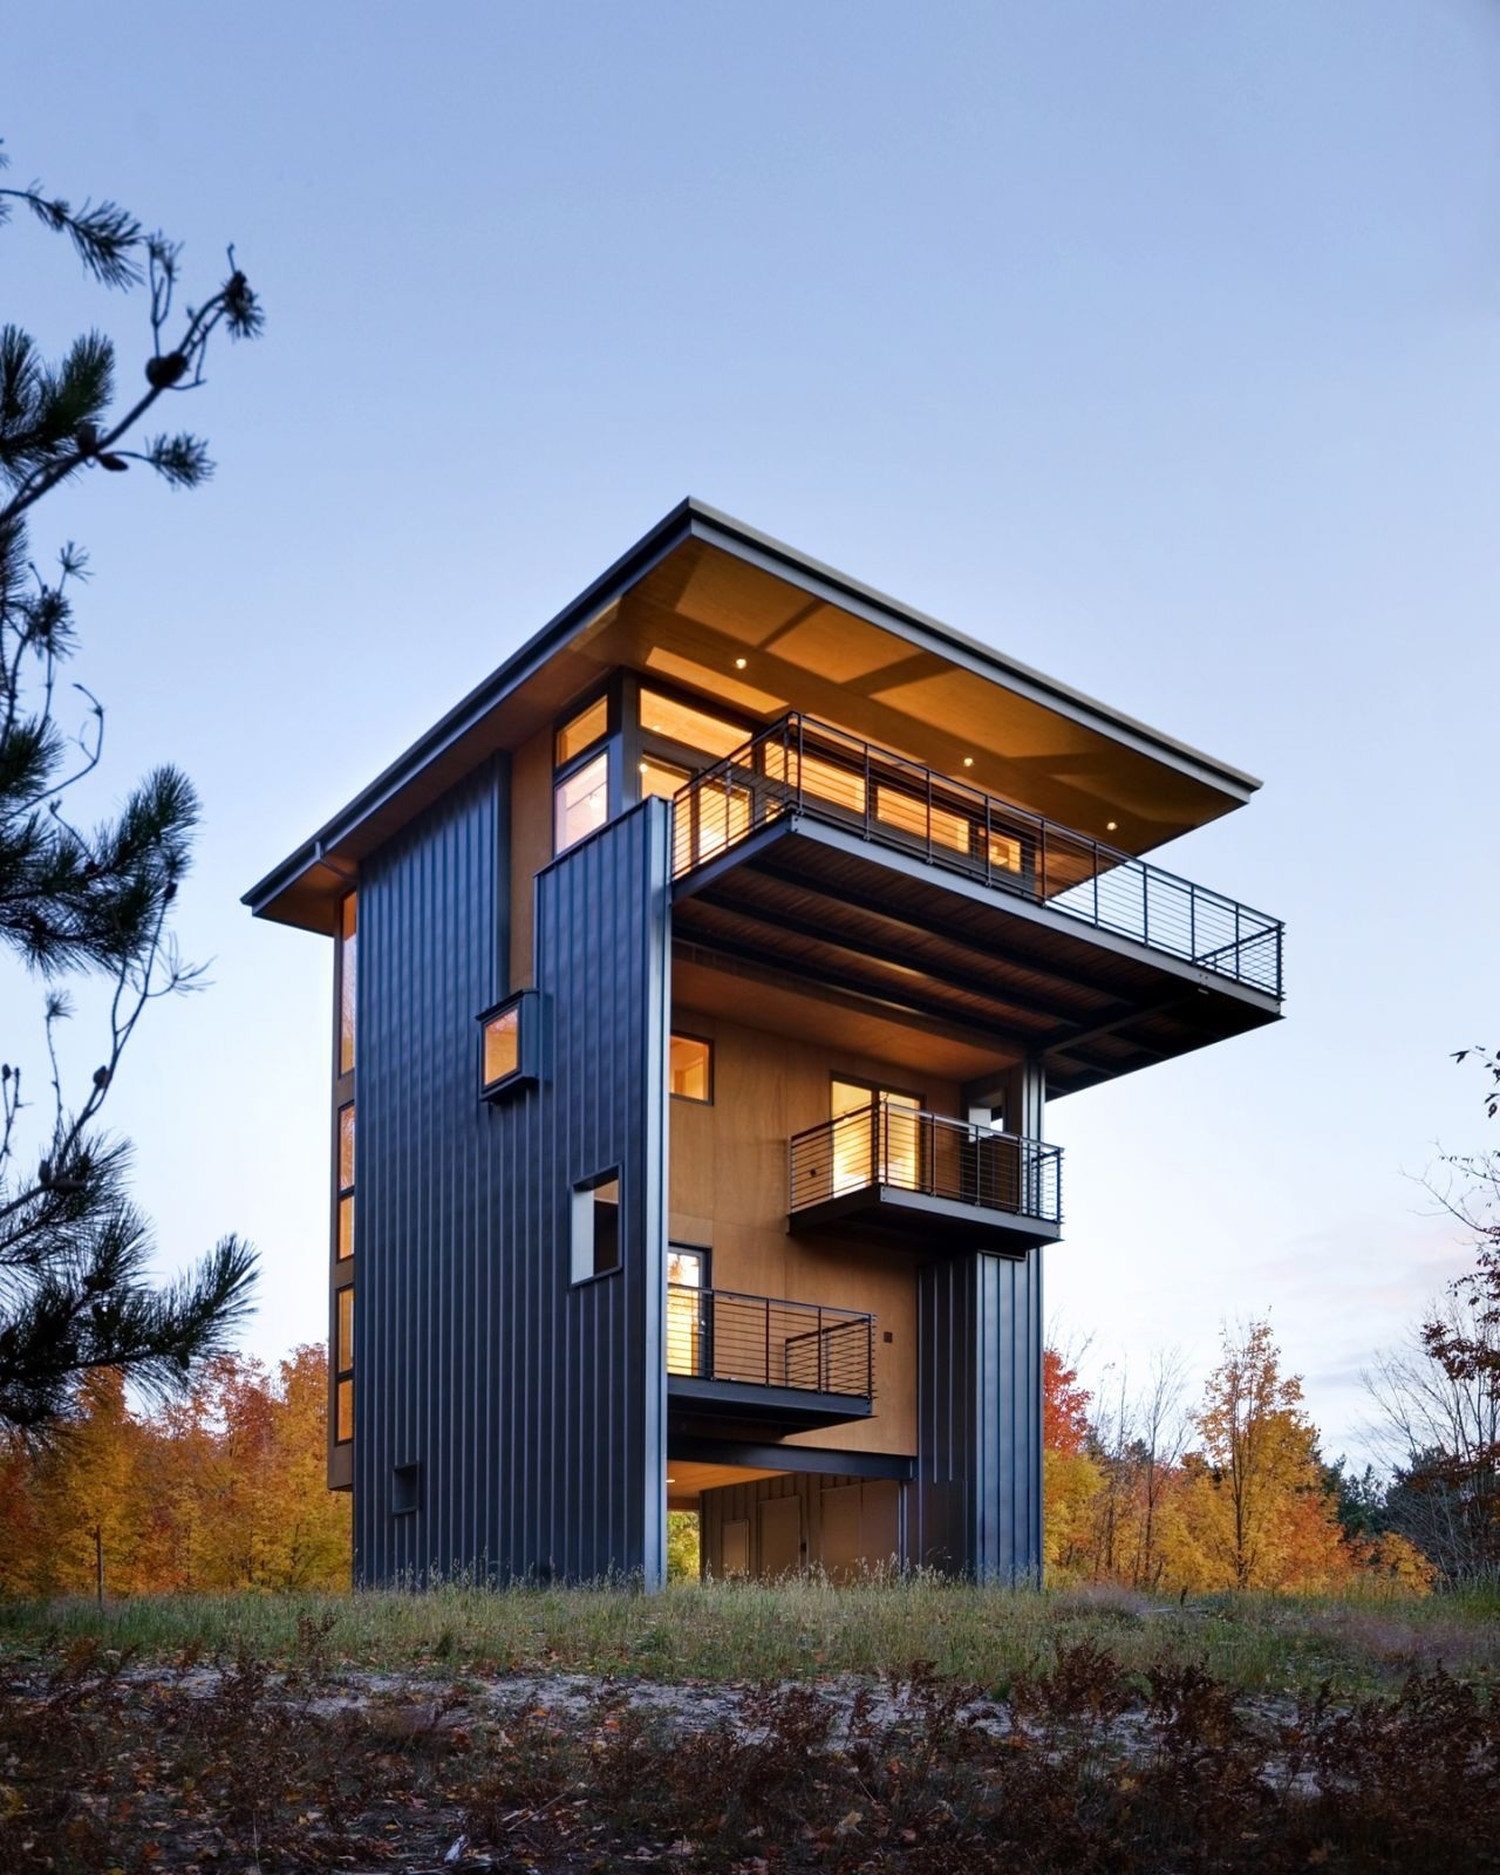 Glen lake tower by balance associates architects for House turret designs